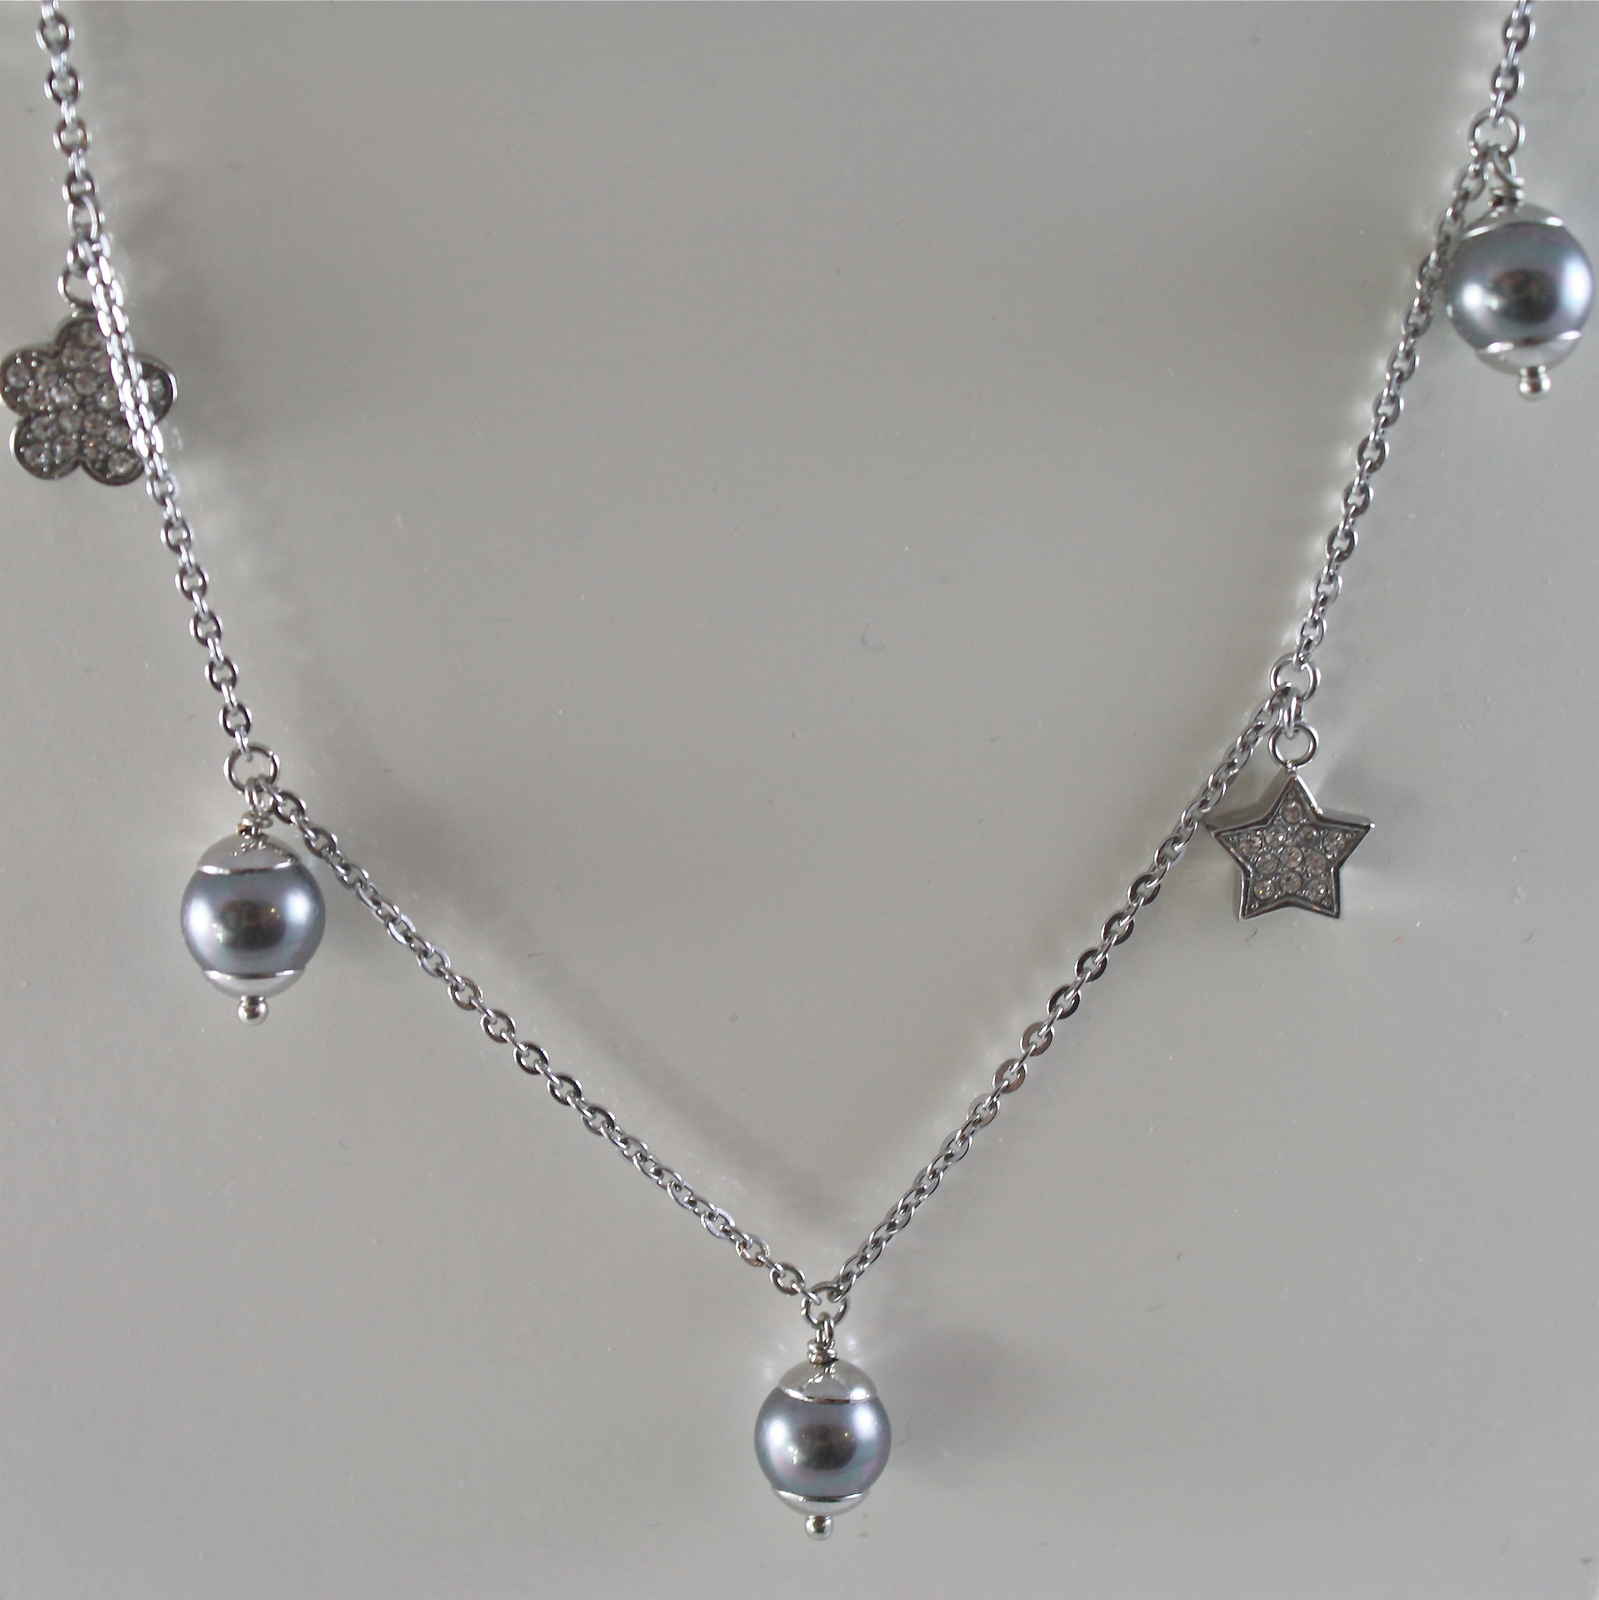 STAINLESS STEEL NECKLACE WITH GREY PEARLS, FLOWER AND HEART CHARMS 28.75 IN LONG